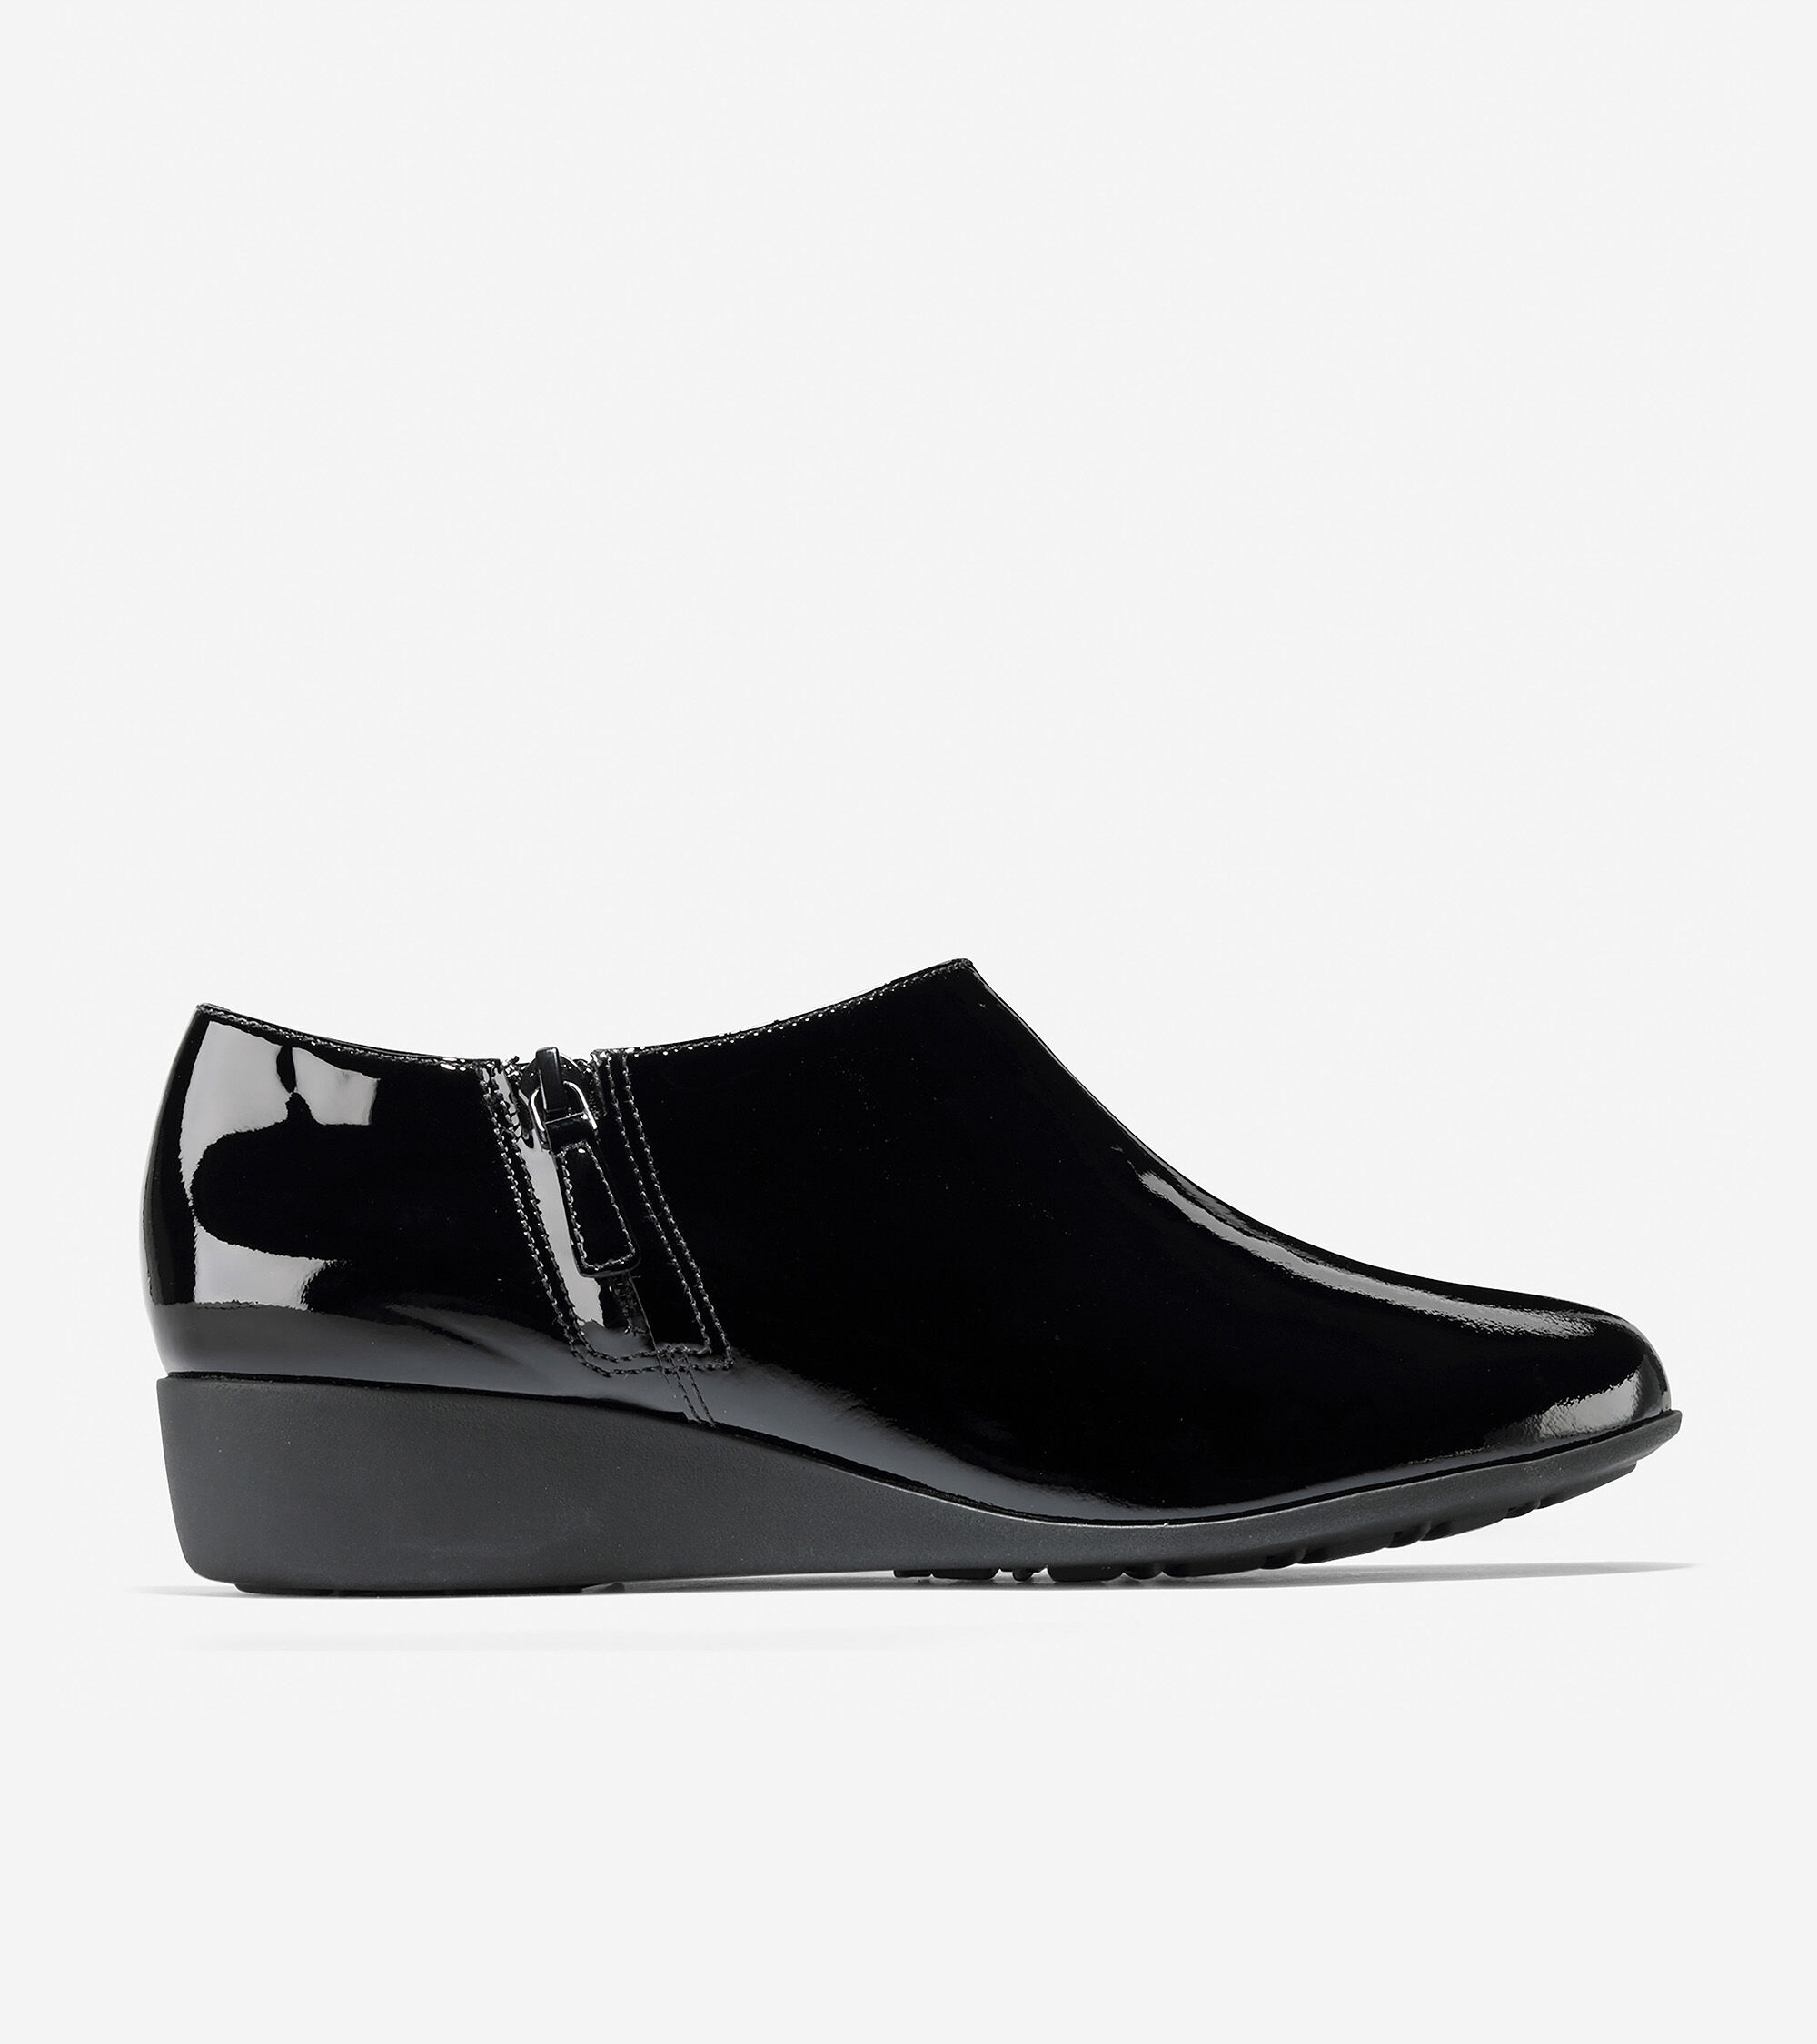 cole haan shoes 10 millimeters equals how many meters in a milli